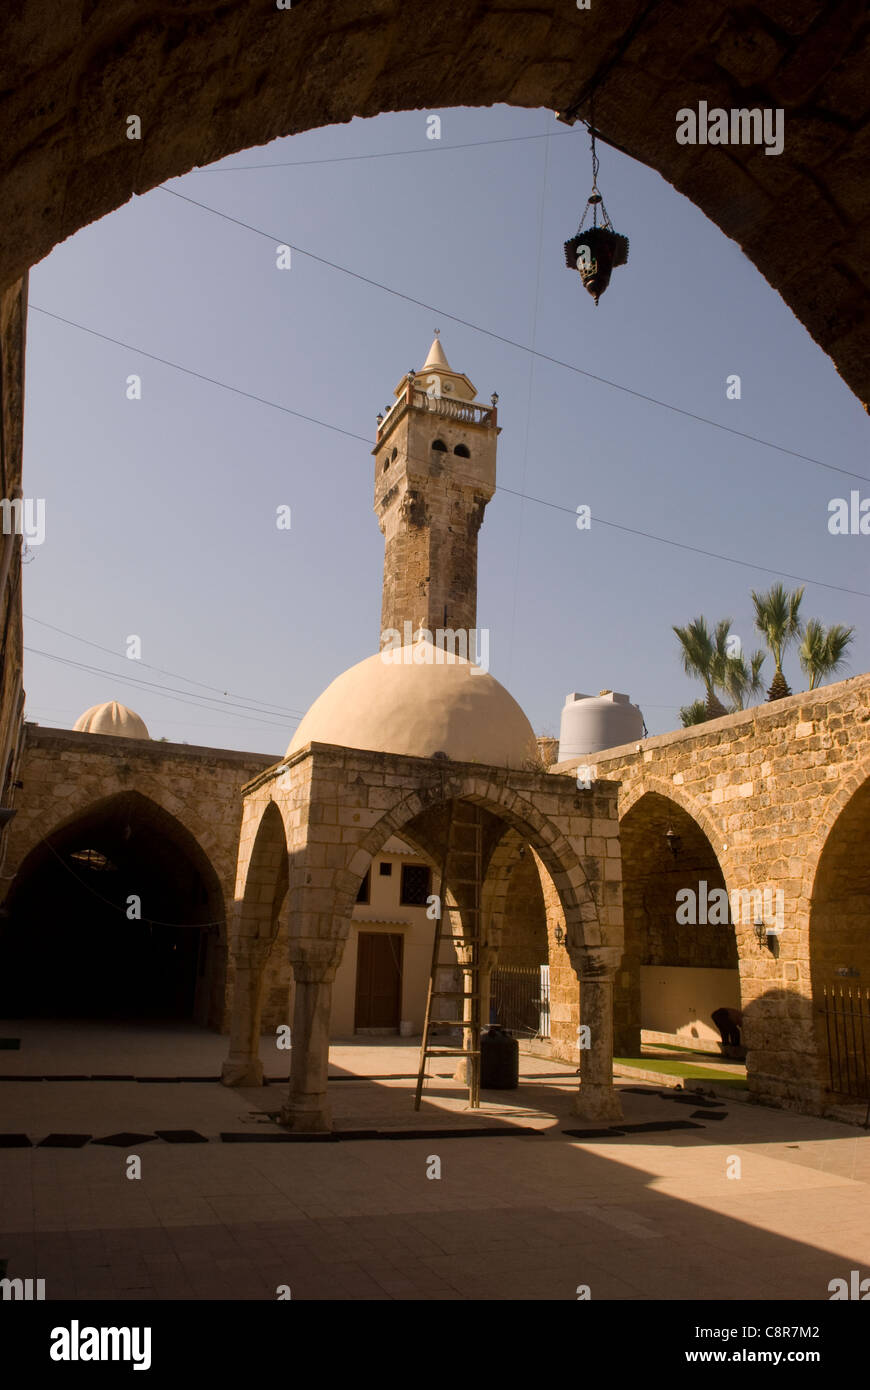 Courtyard of the 14th century Al Tawbat Mosque, old city, Tripoli, northern Lebanon. - Stock Image